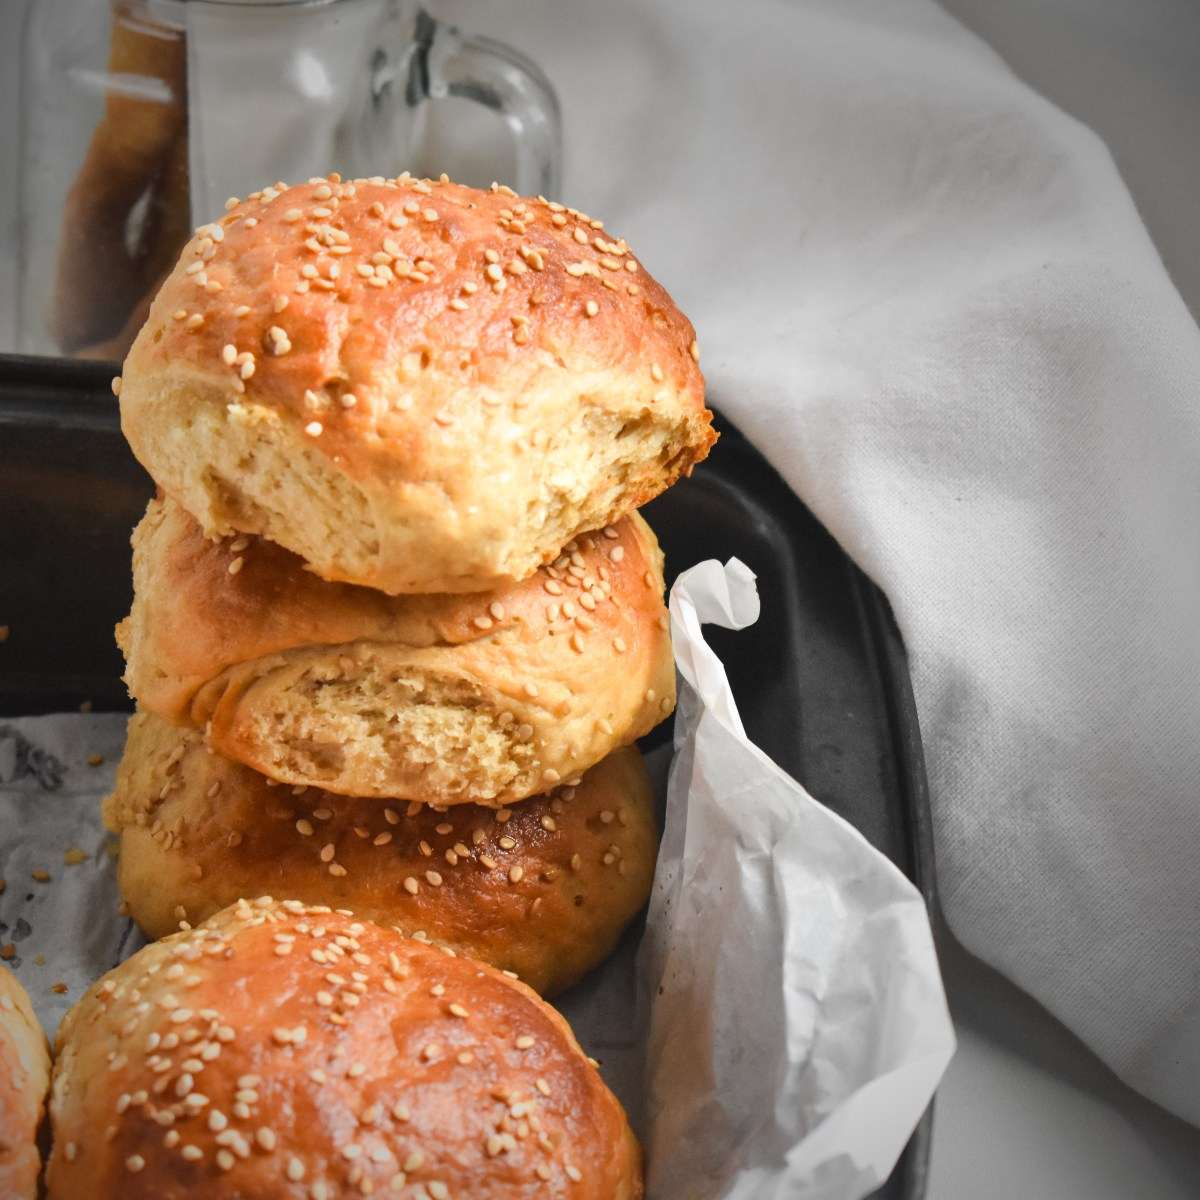 Homemade Burger Buns - Parveenskitchen.com